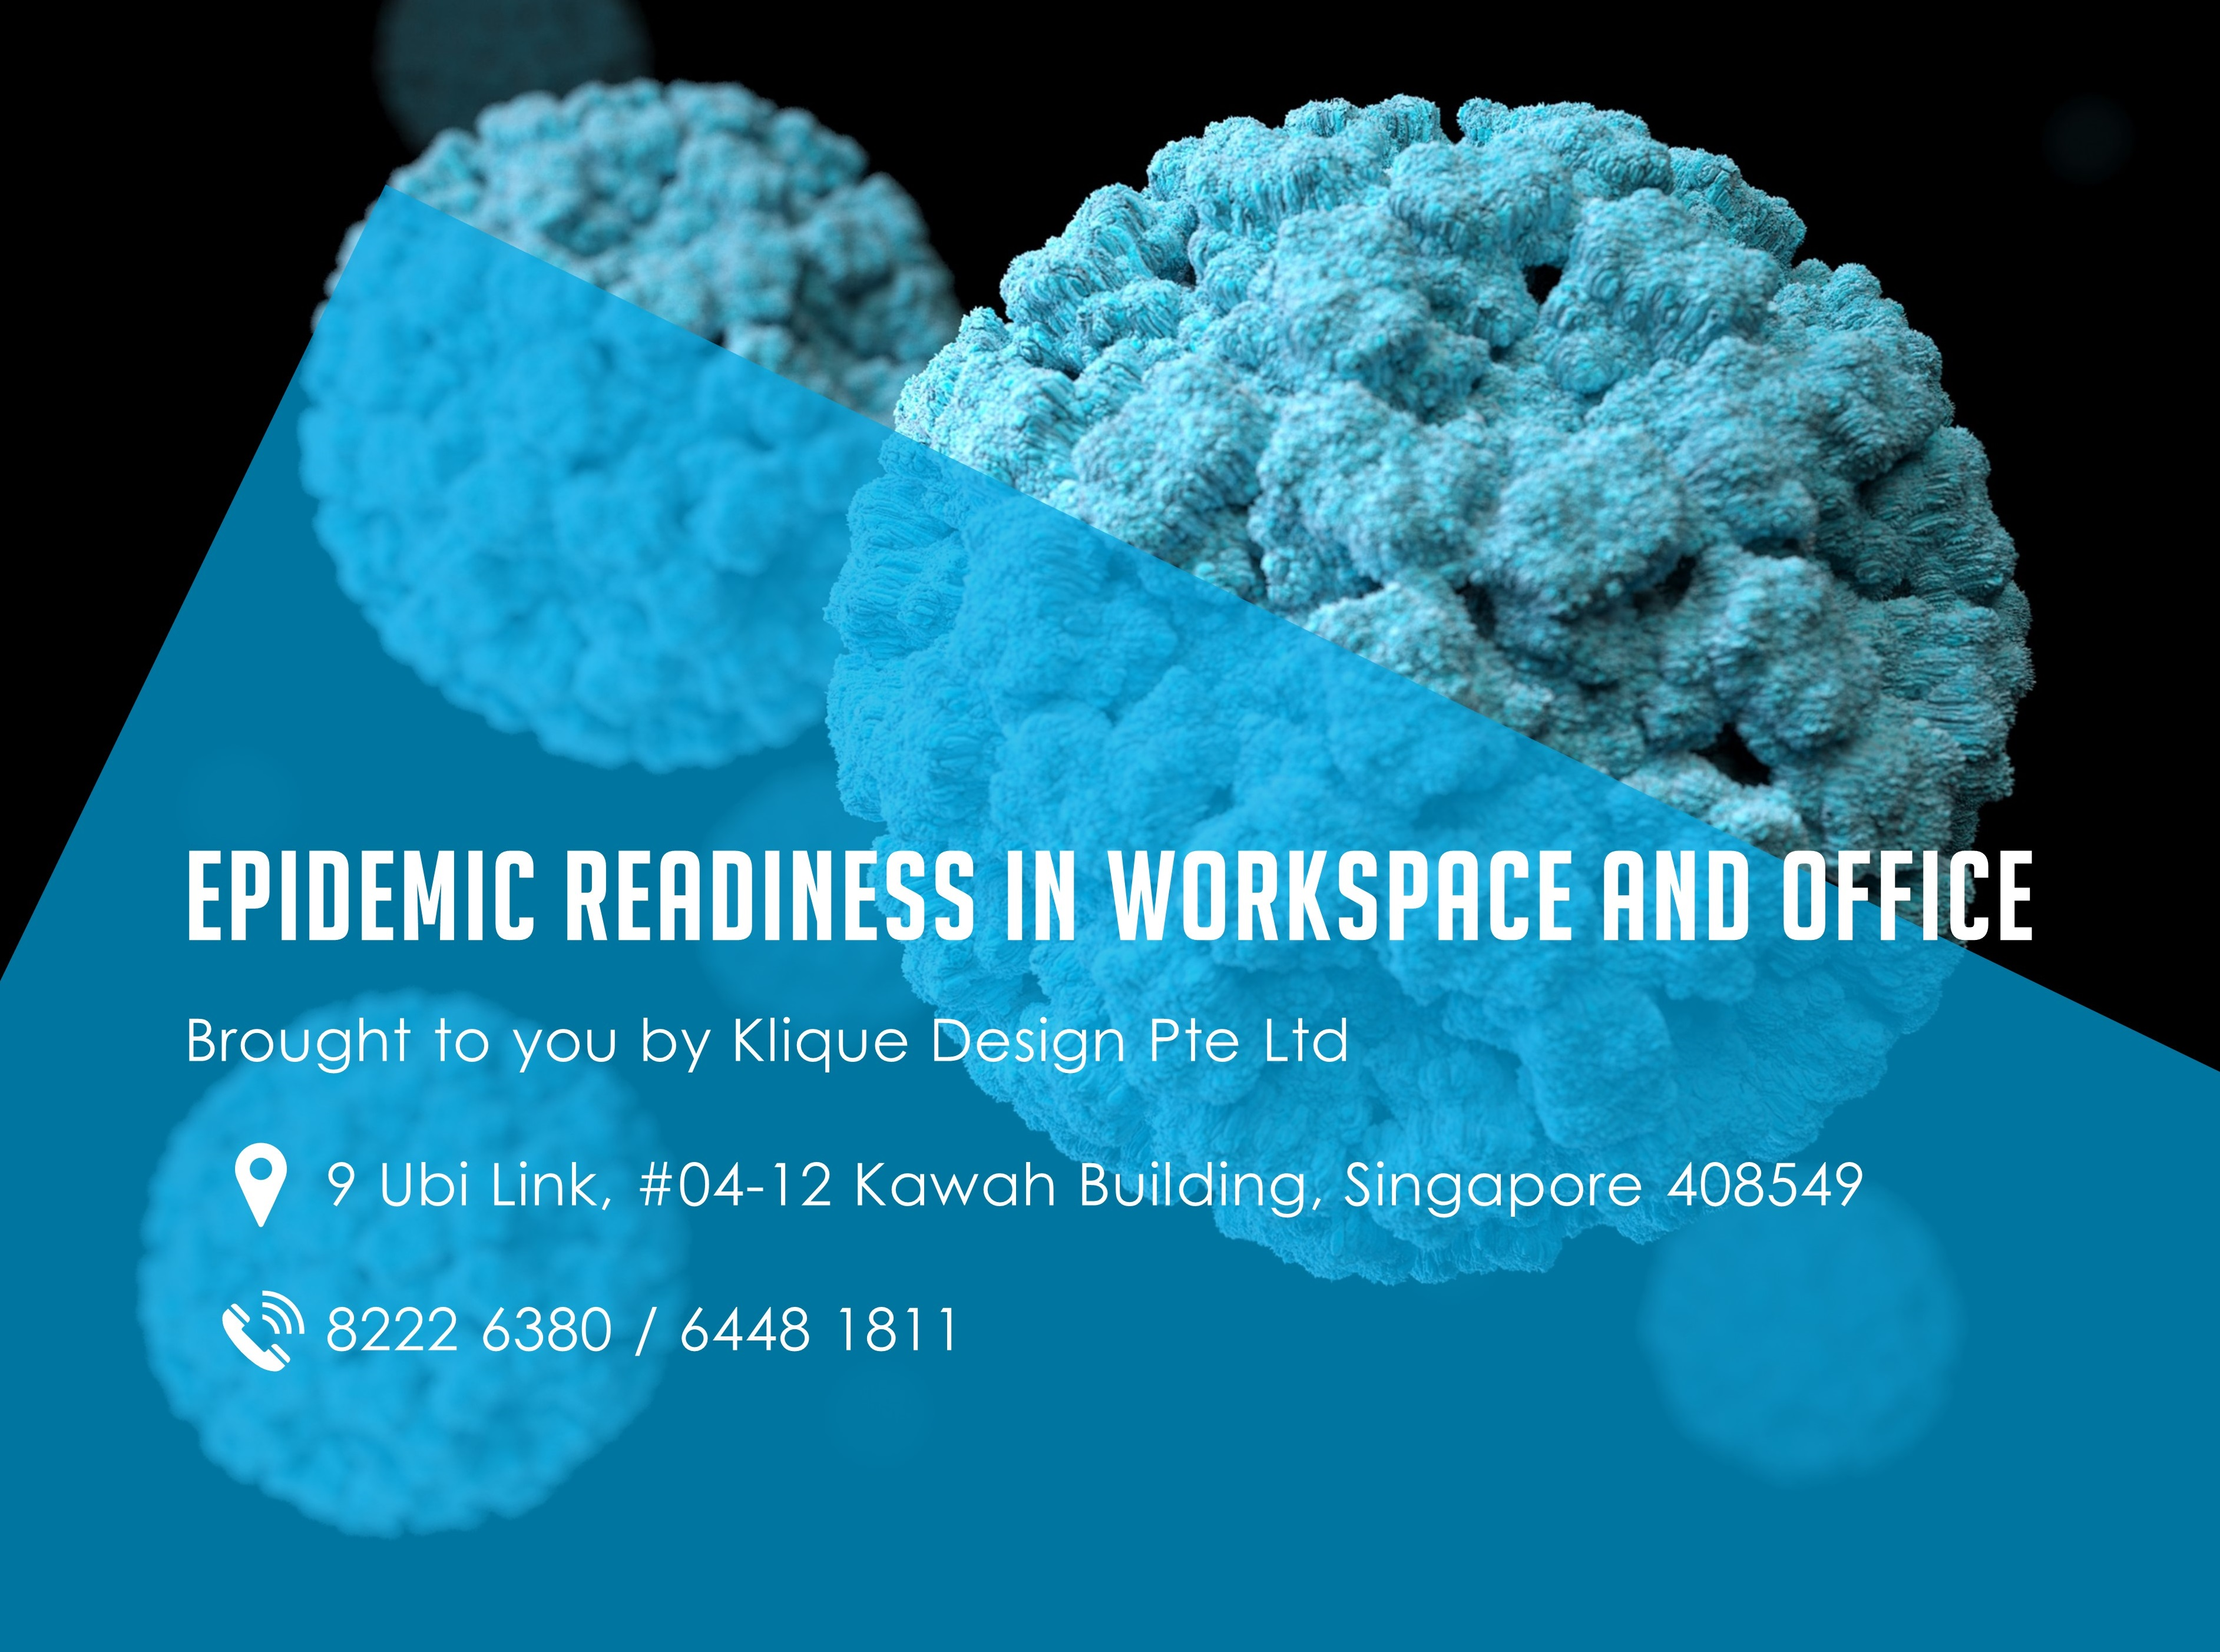 Epidemic Readiness in Workspace and Office